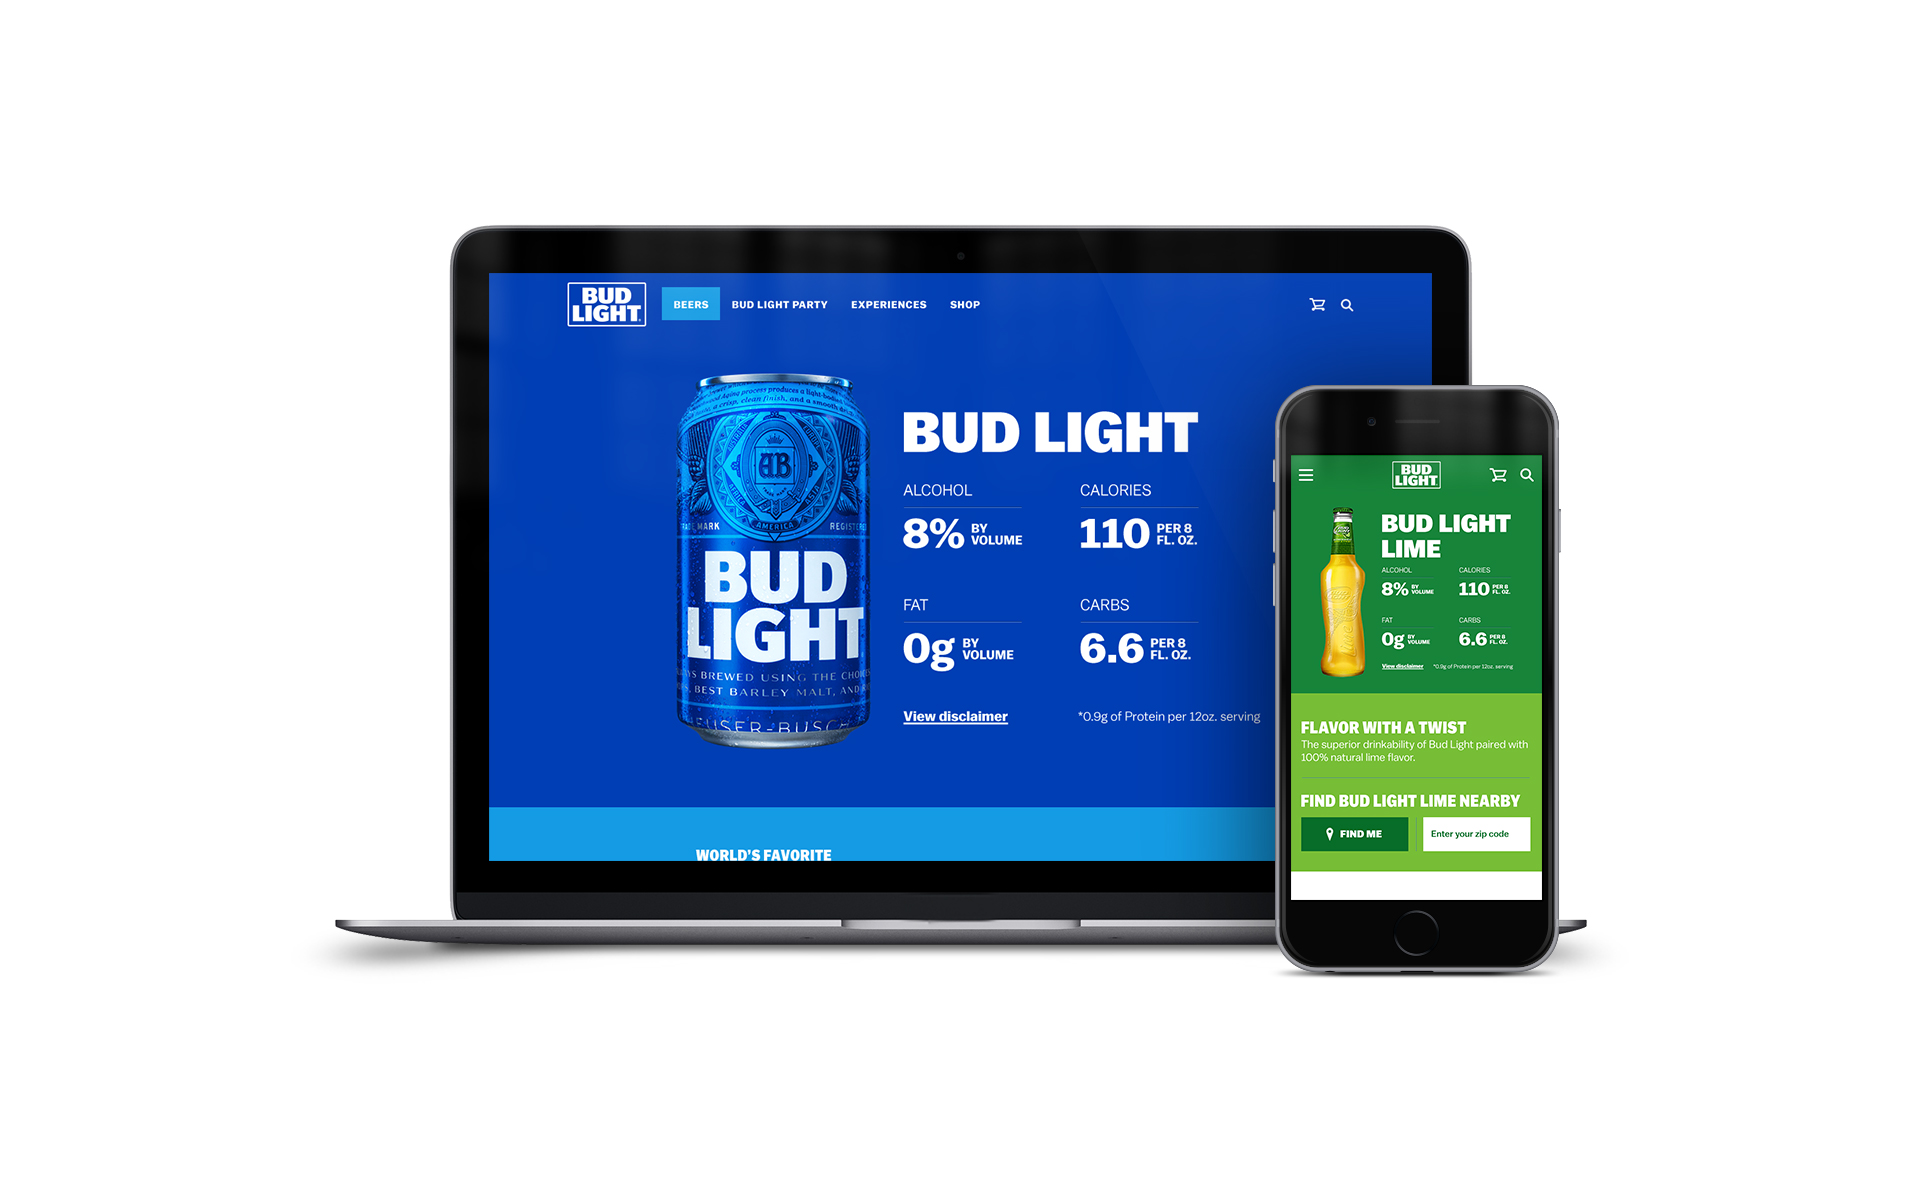 budLightcomProductPageResponsive